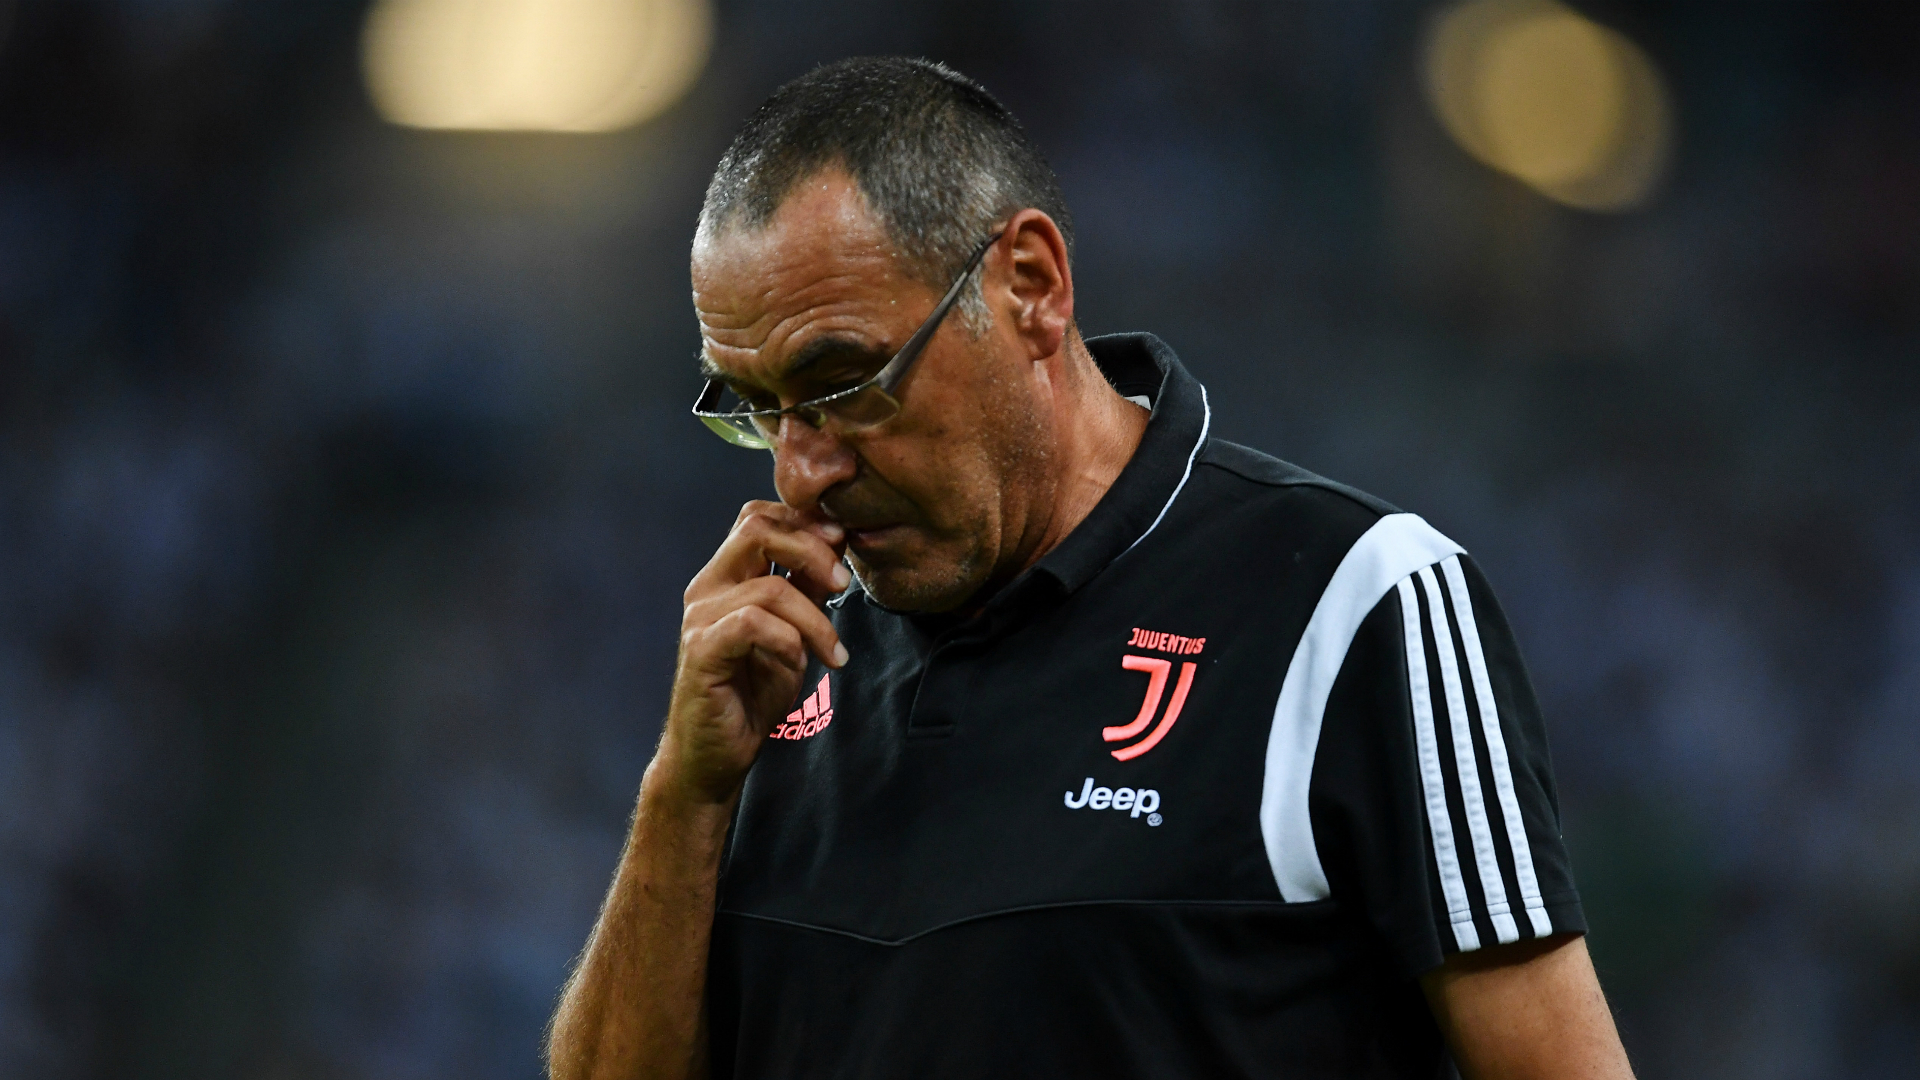 Sarri blames Juventus 'naivety and physical condition' for loss to Tottenham